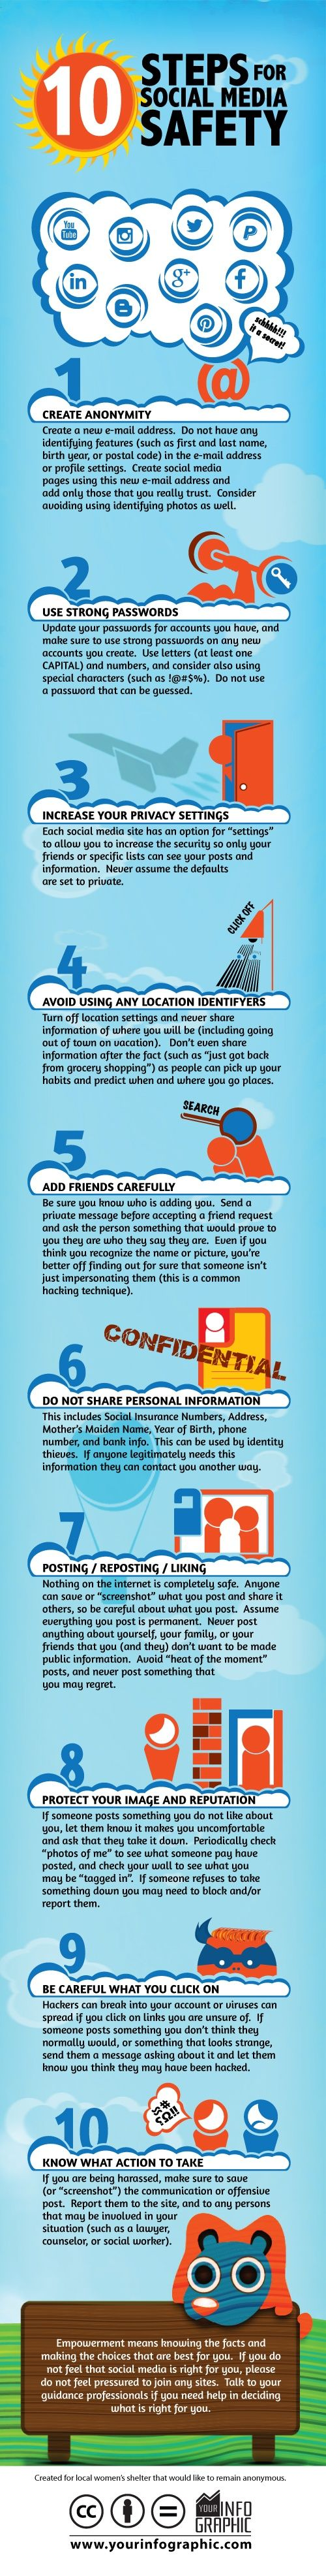 10 Simple Steps To Staying Safe On Social Networks social media safety